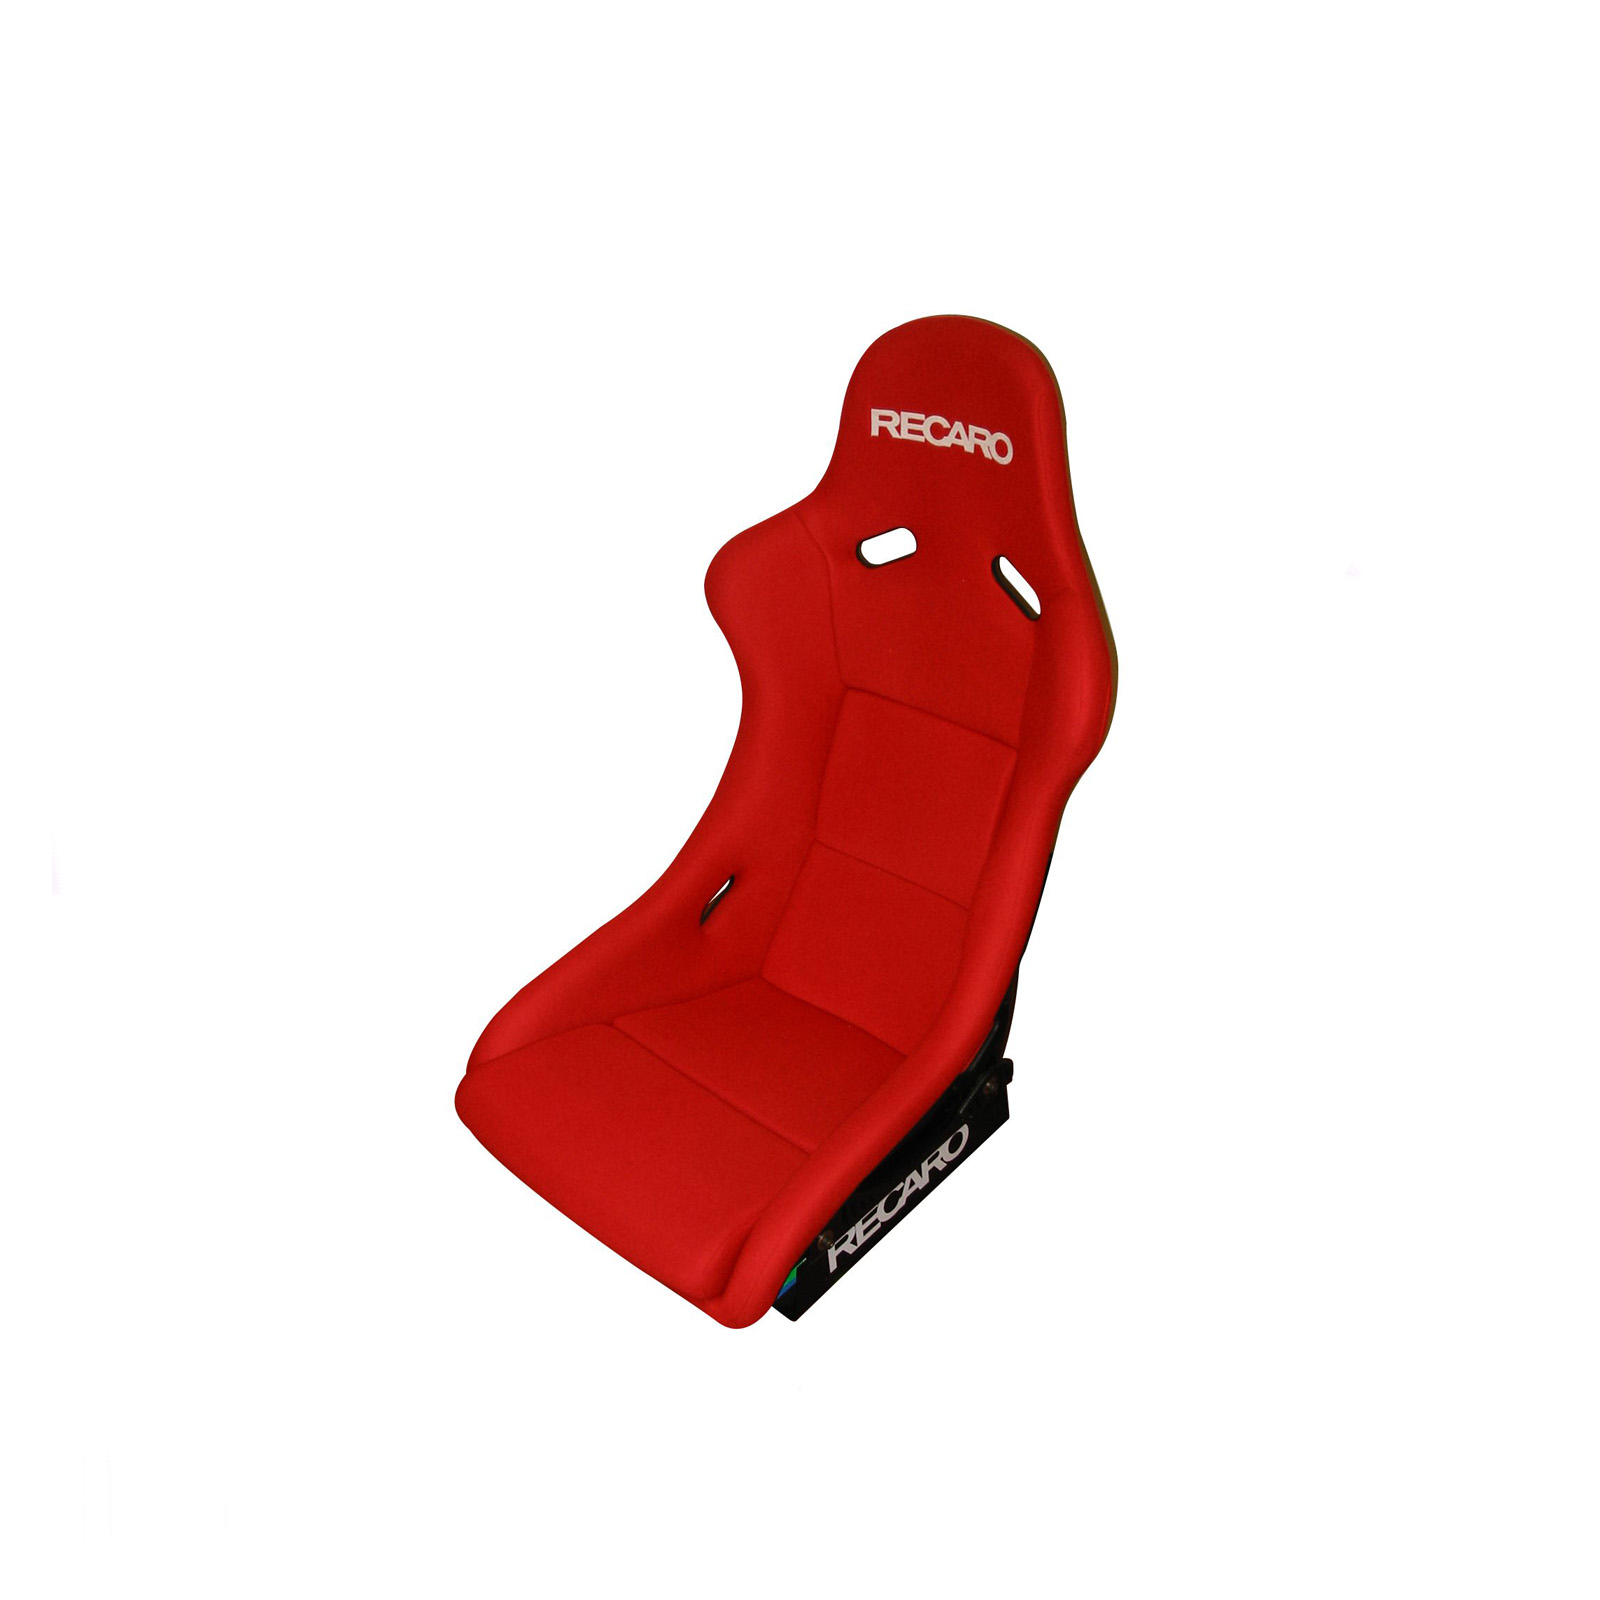 RECARO POLE POSITION RED FIA